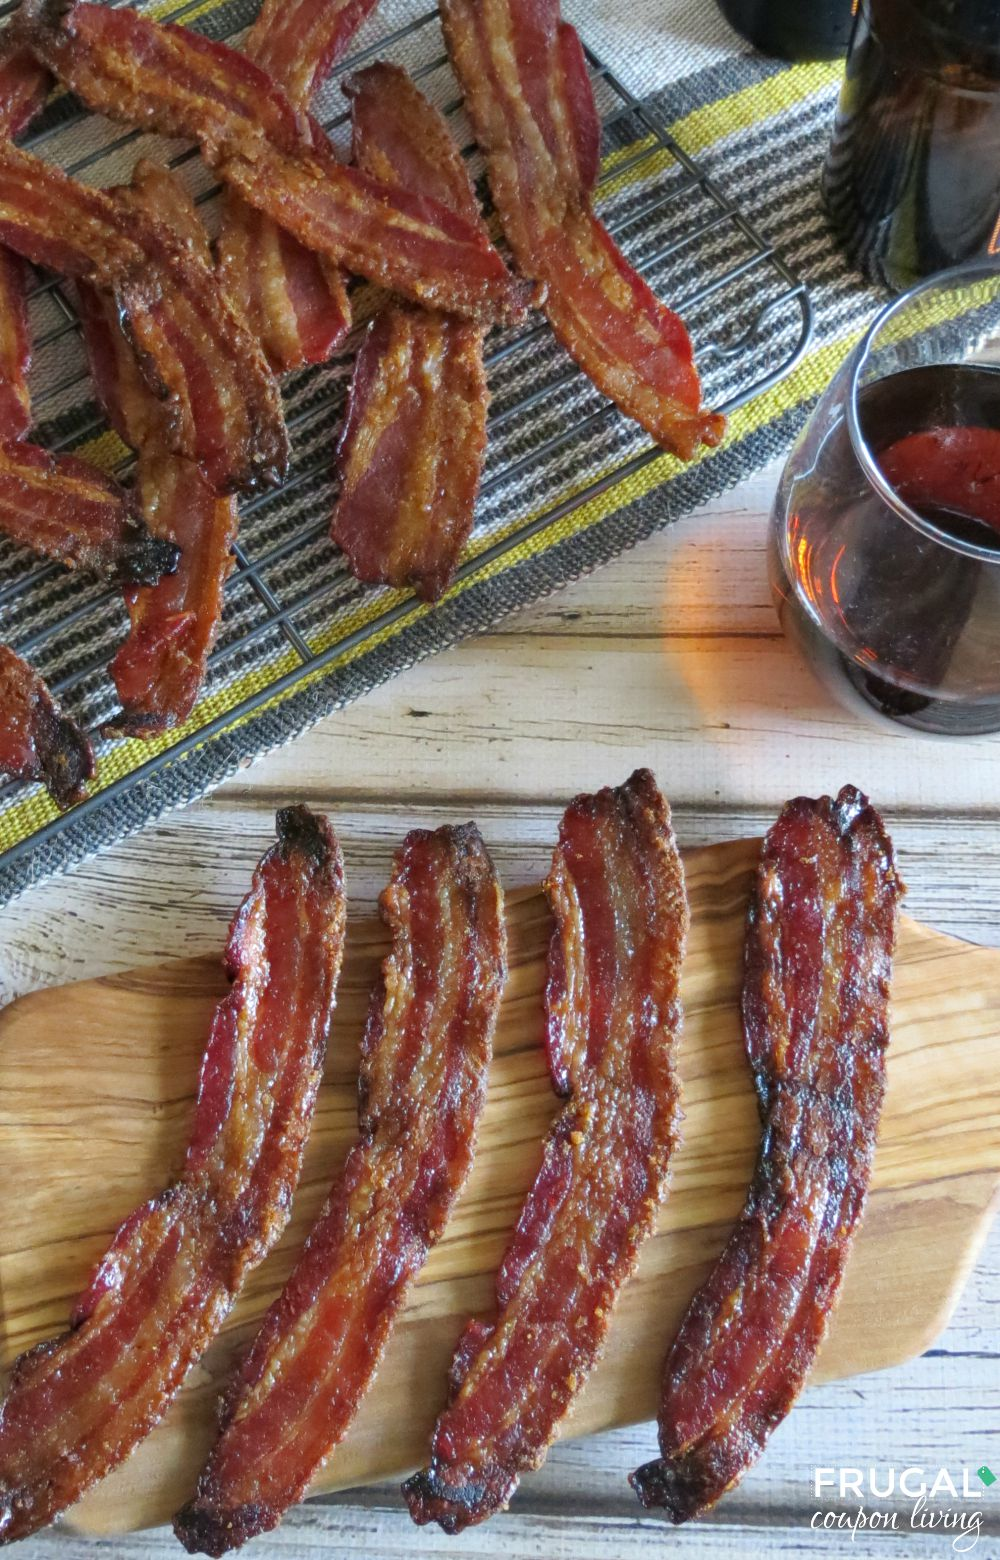 candied-bacon-large-frugal-coupon-living